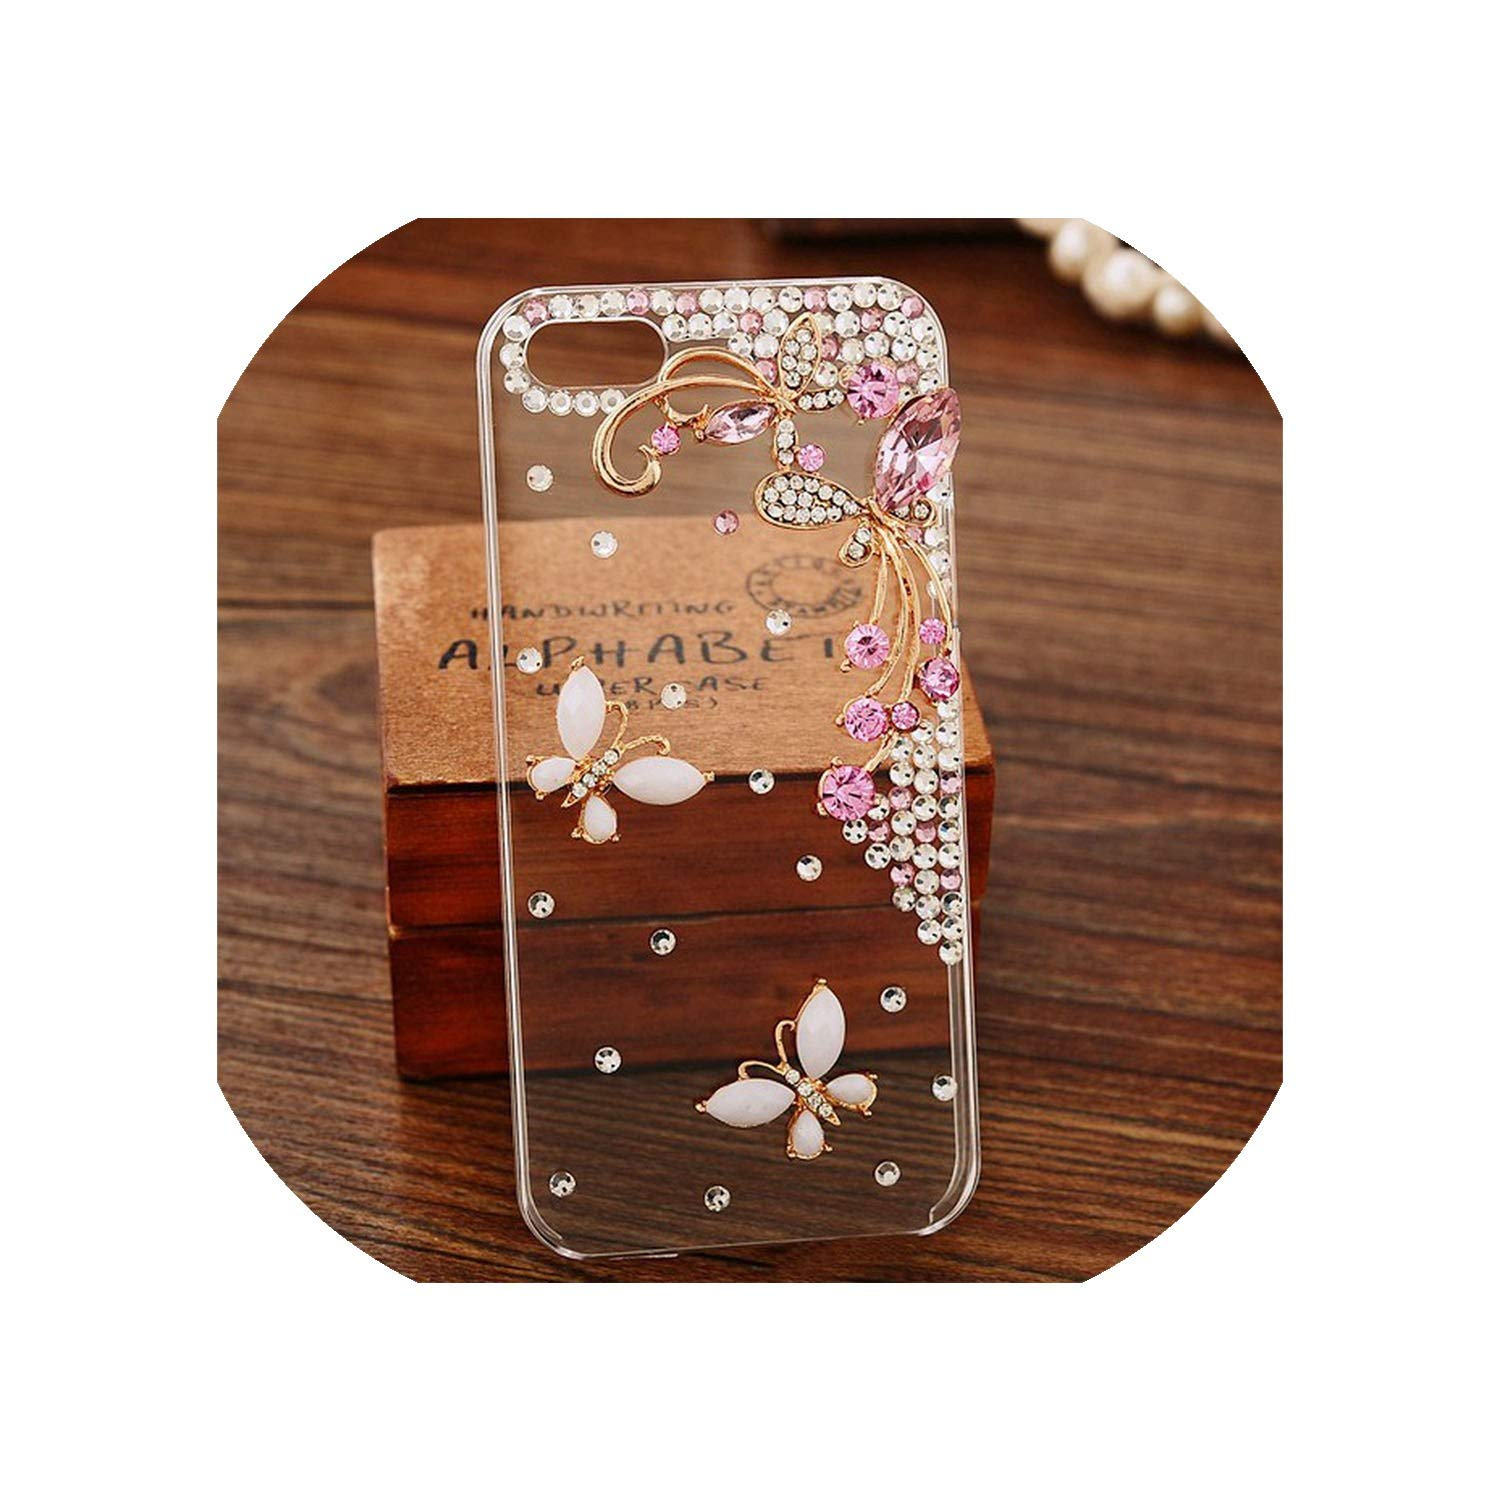 nan Phone-case-Shop Luxury Diamond Case for iPhone X XR XS Max 6 6S 7 8 Plus Crystal Soft Case for iPhone X XR XS Max 6 6S 7 8 Plus Flower Cover,for iPhone 8 Plus,H